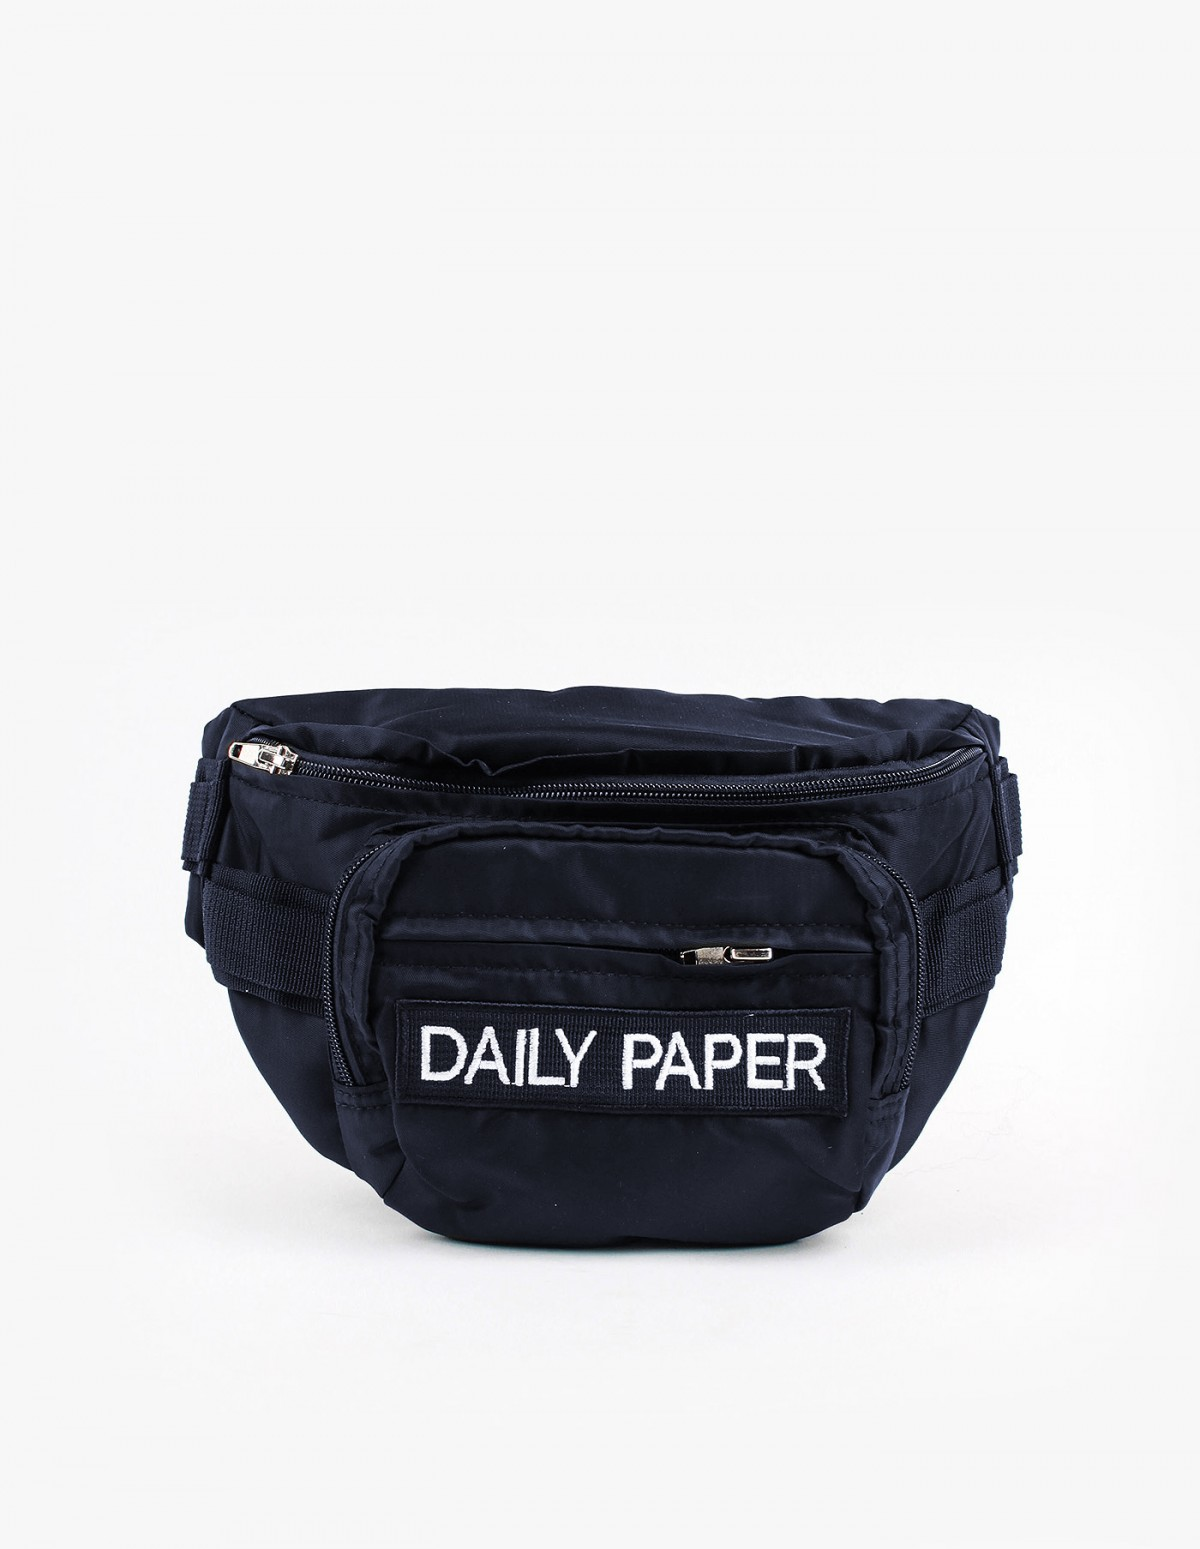 Daily Paper Waistpack in Navy